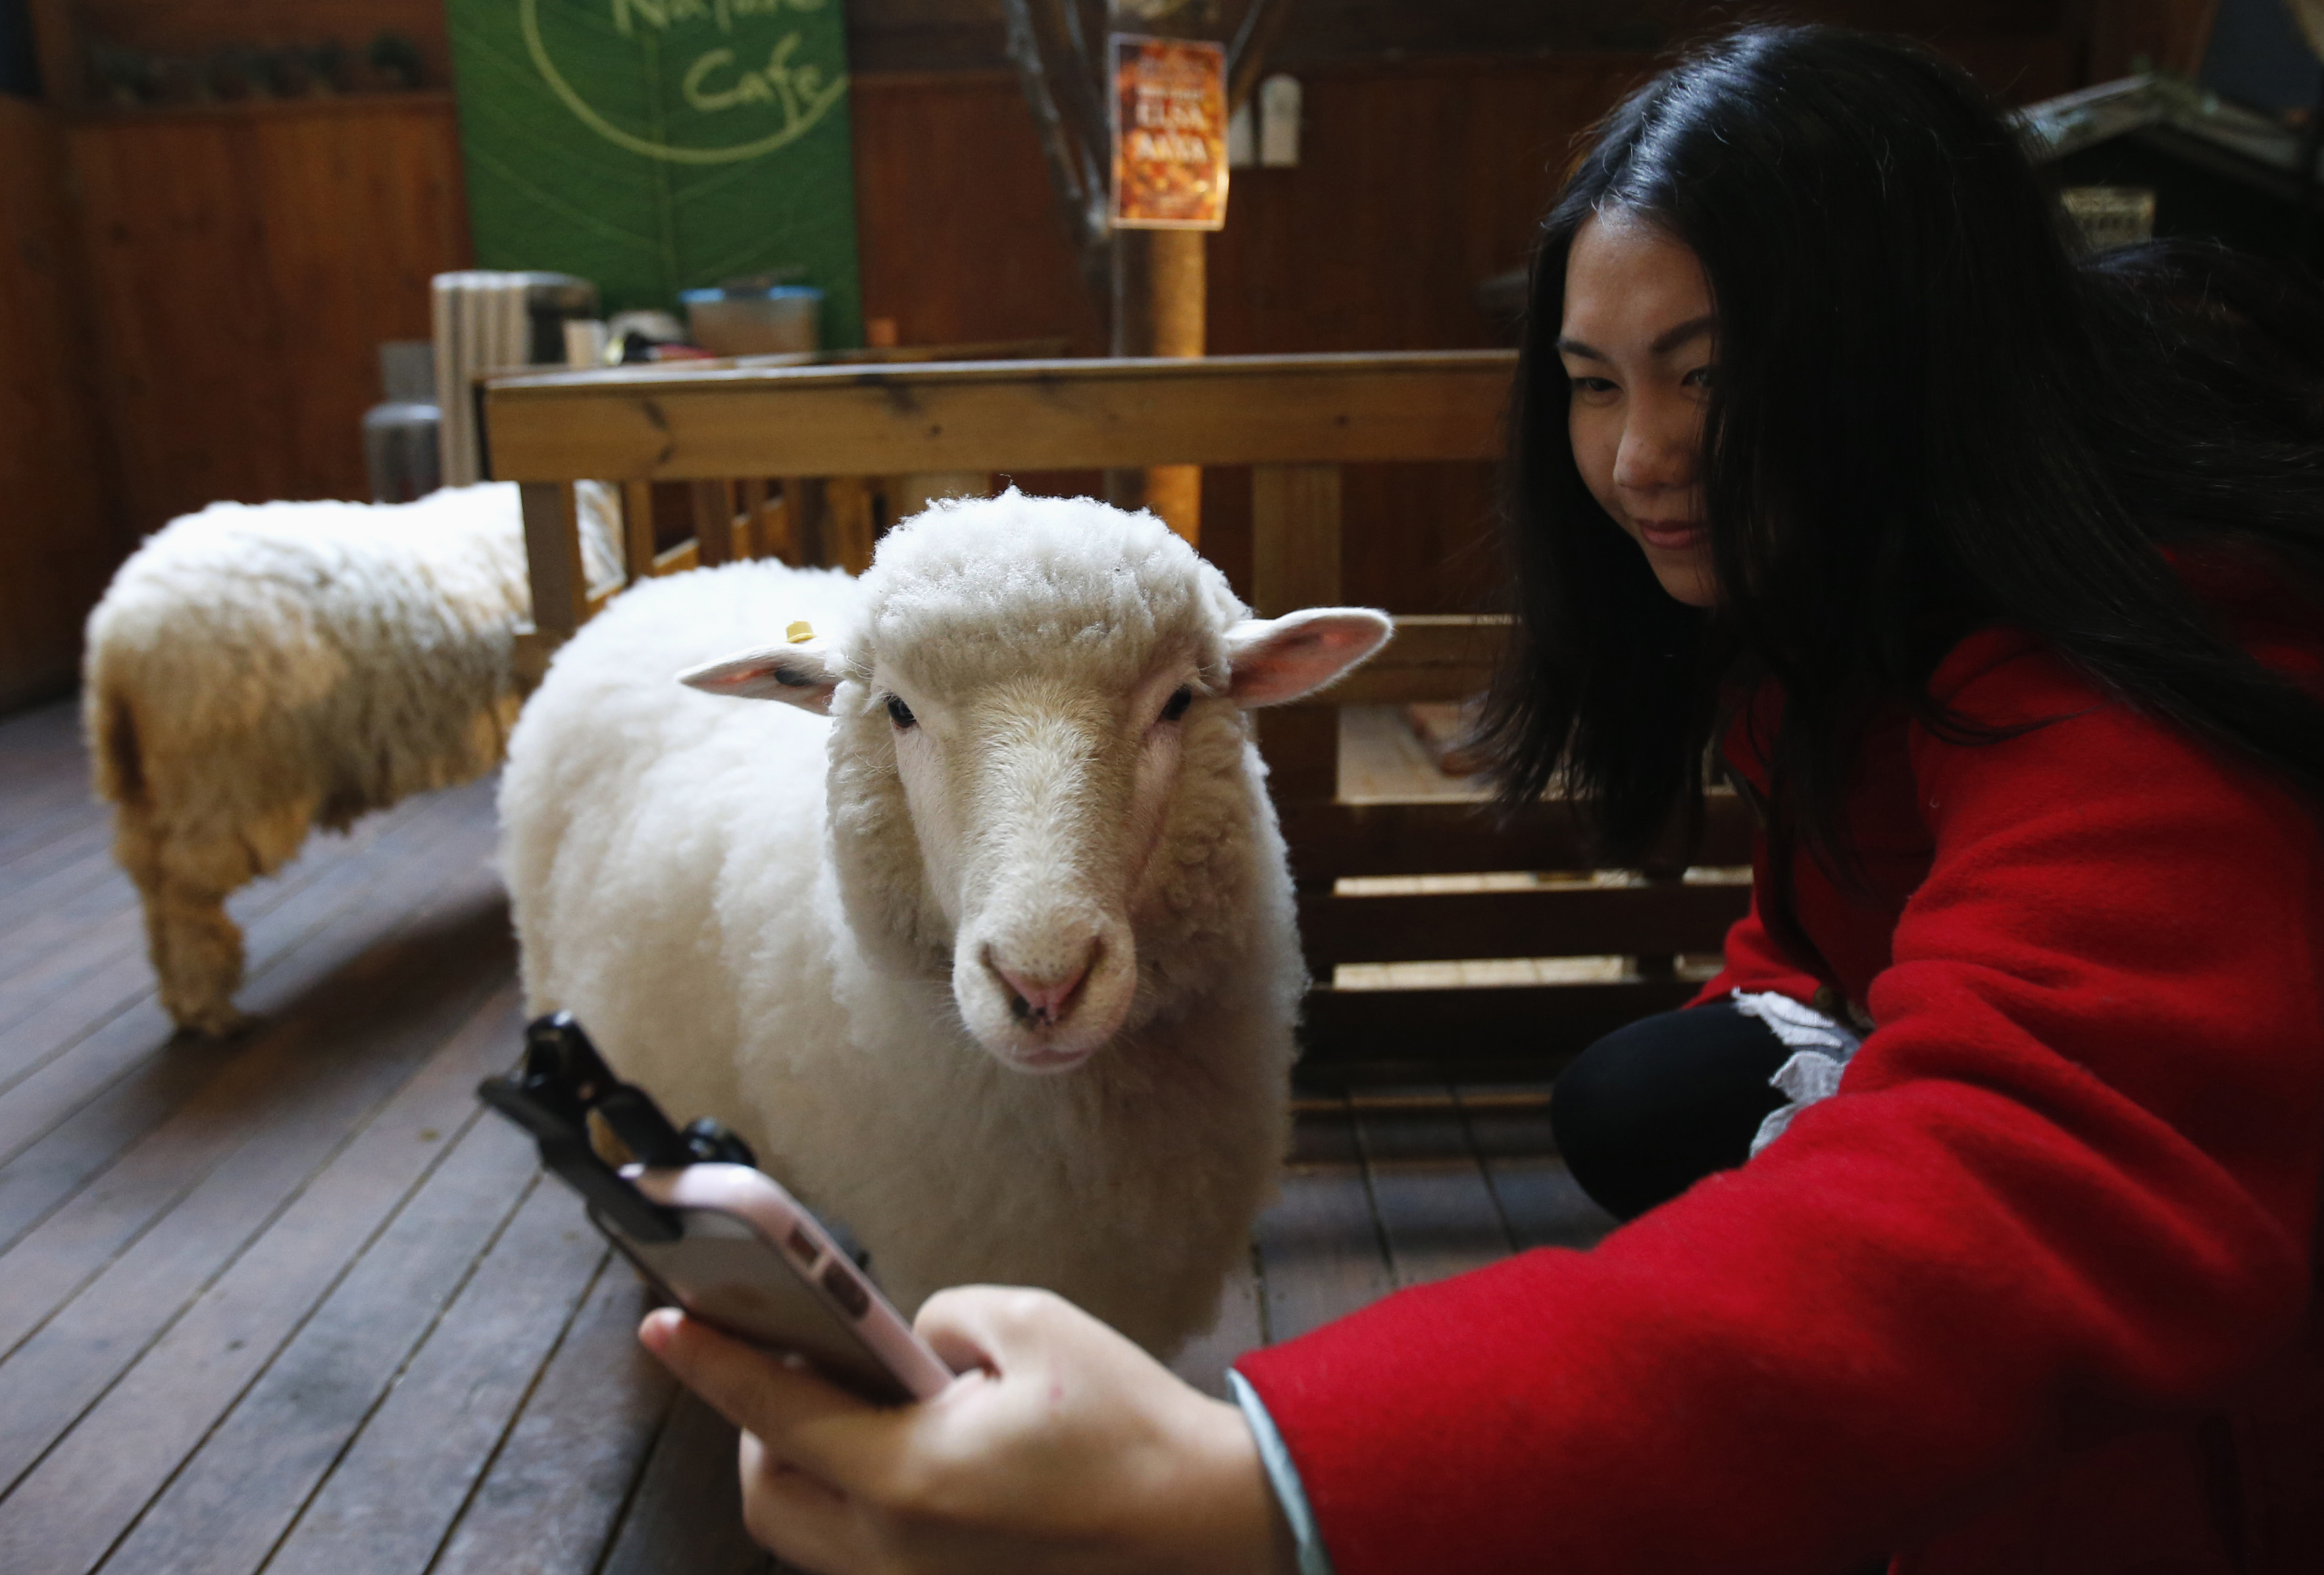 A woman takes a selfie with a sheep at a sheep cafe in Seoul